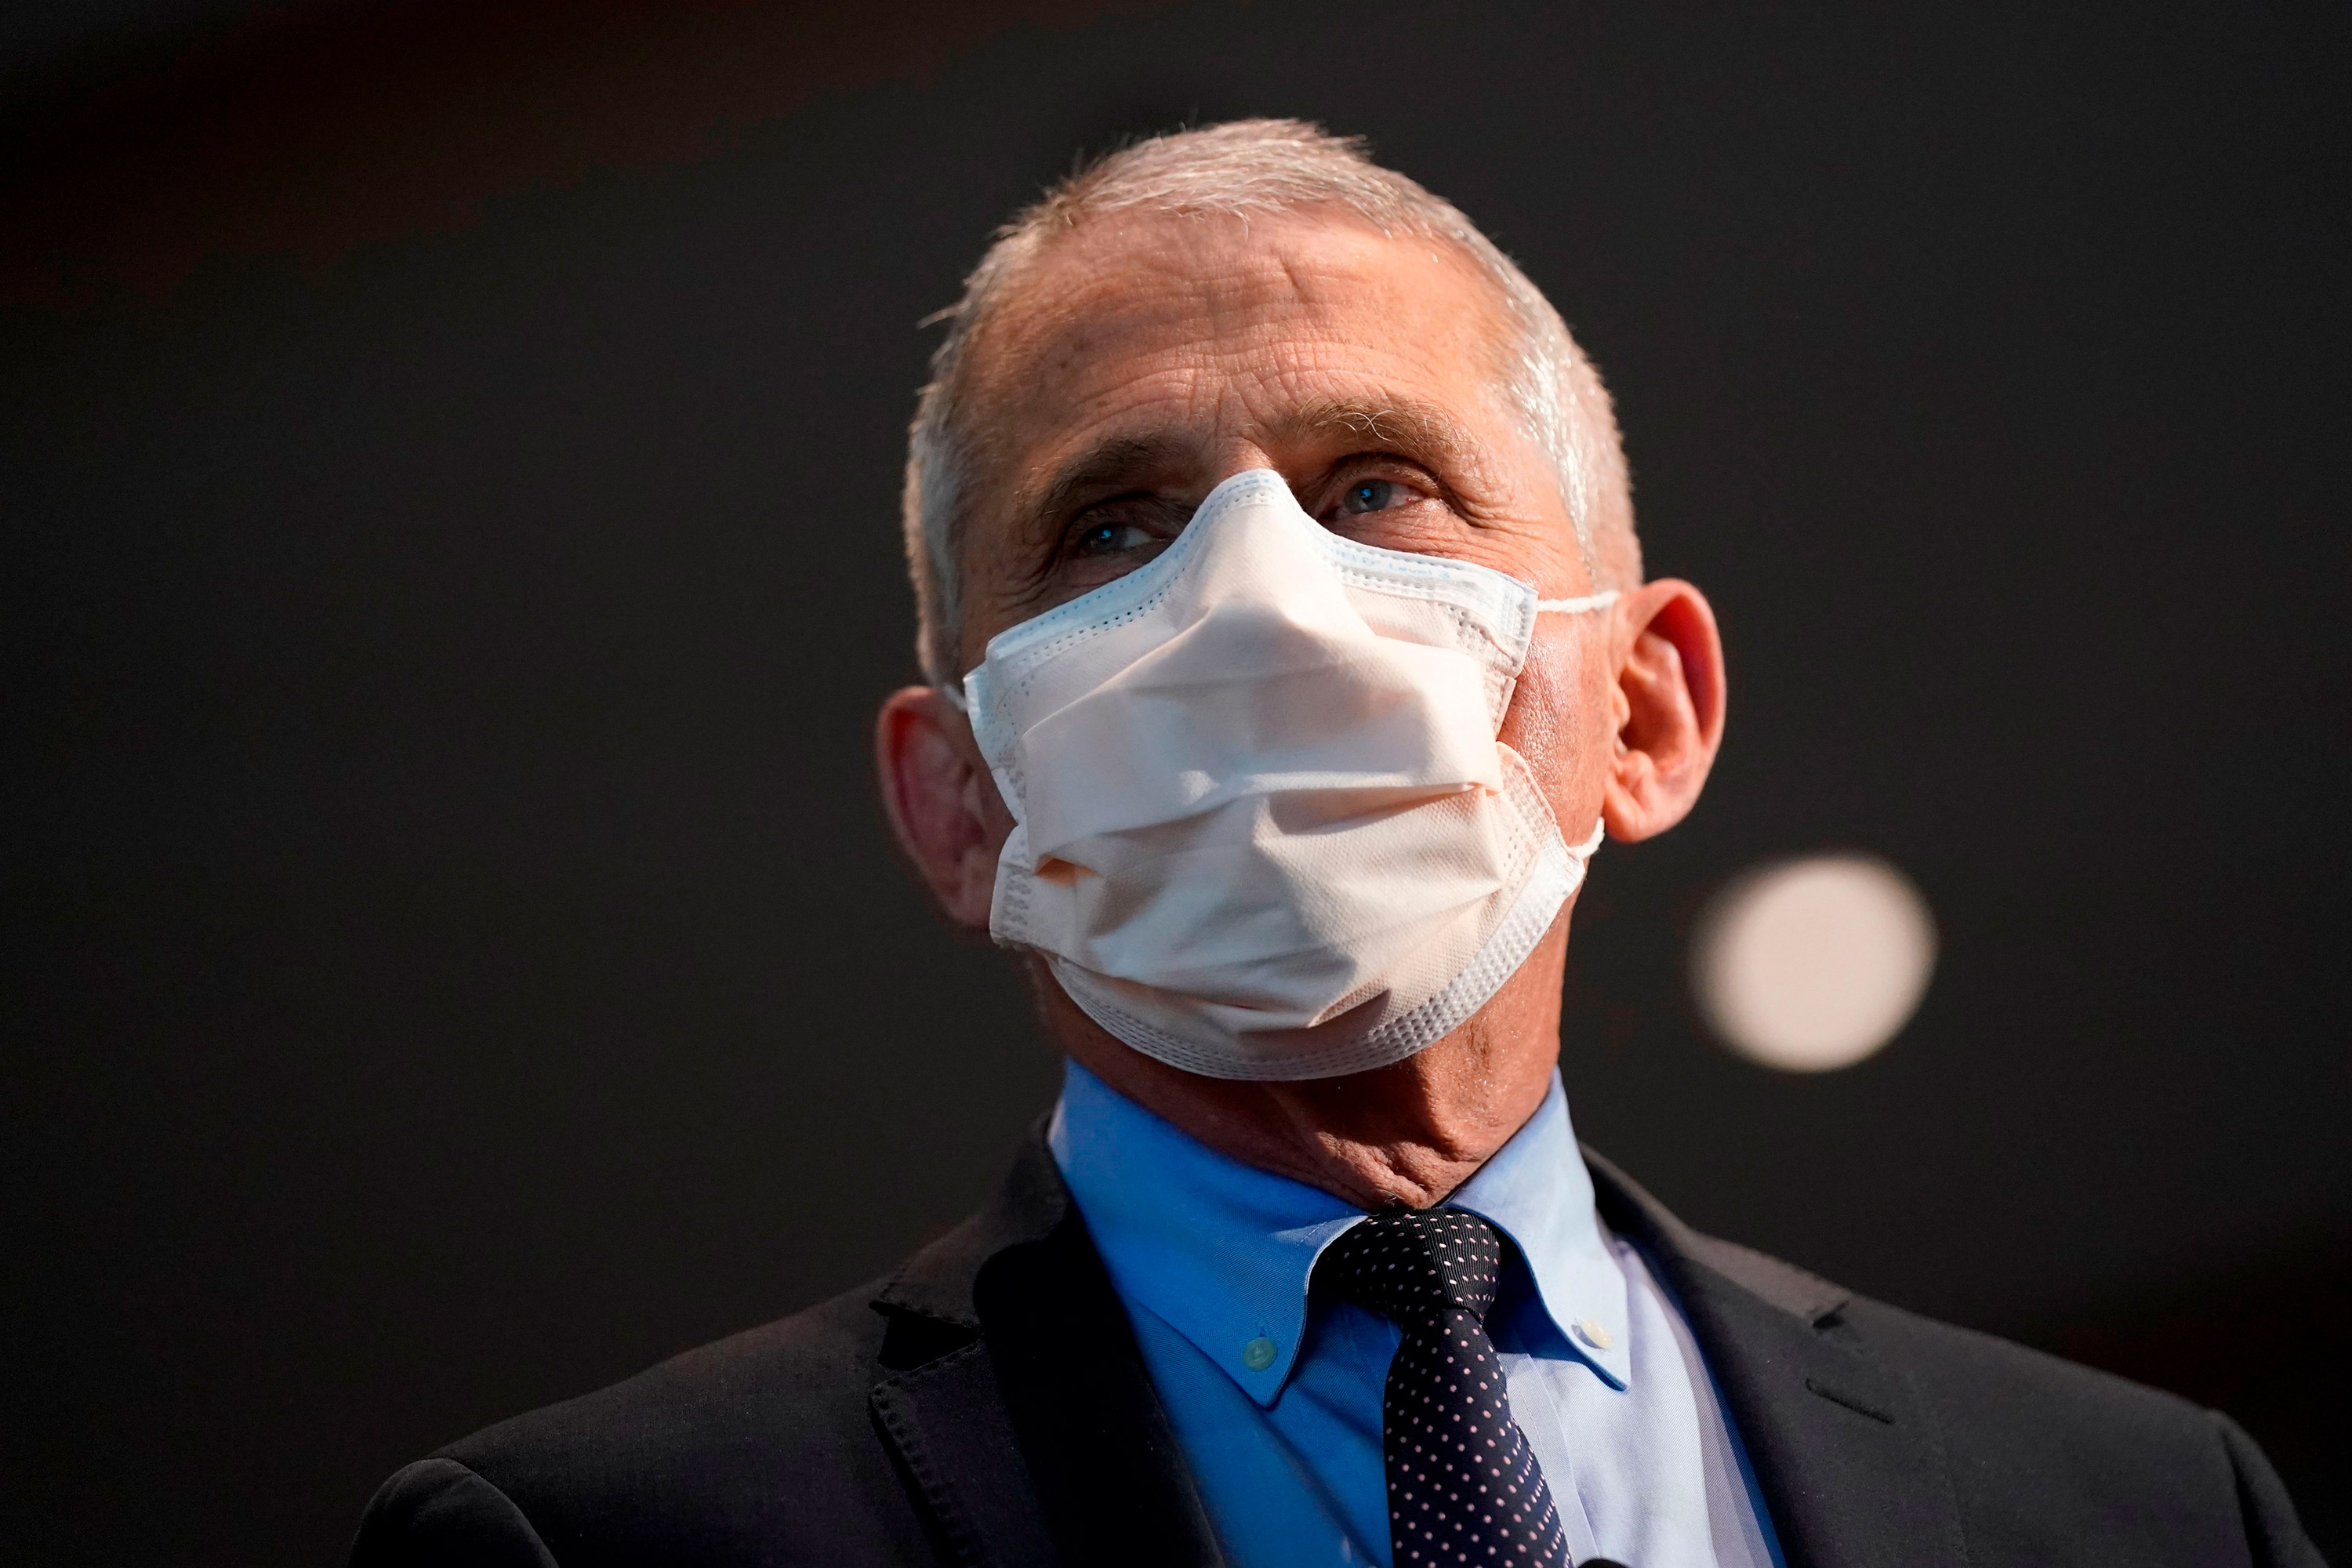 Anthony Fauci, director of the National Institute of Allergy and Infectious Diseases, stands at the National Institutes of Health on December 22, 2020, in Bethesda, Maryland.